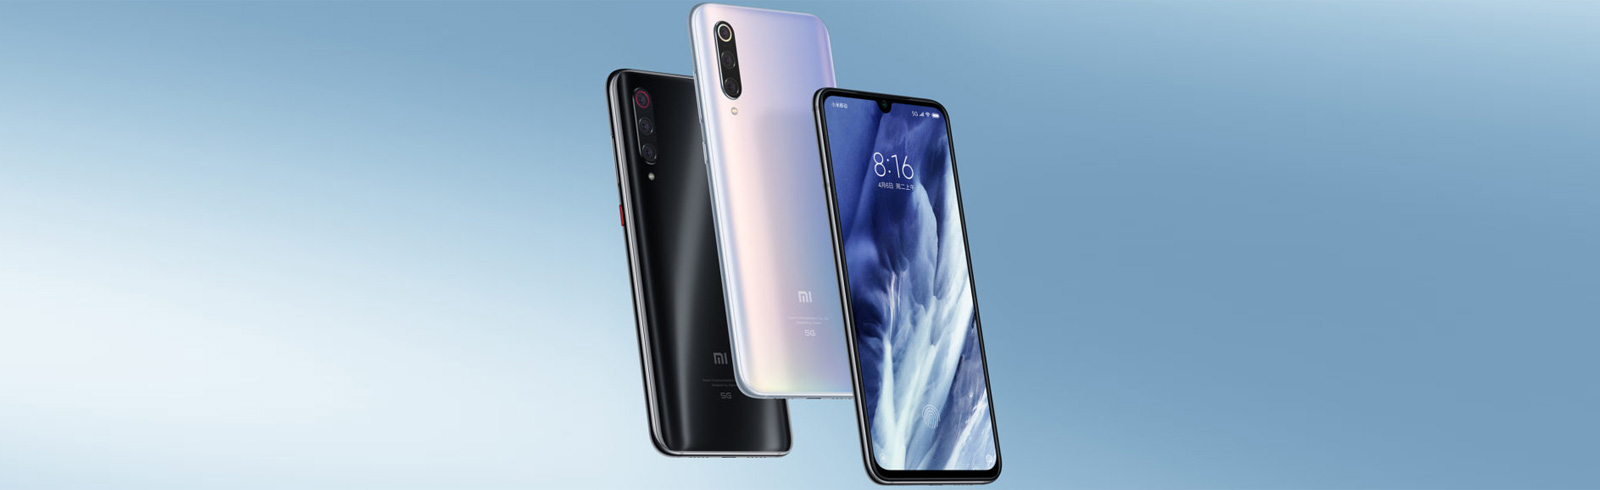 Xiaomi Mi 9 Pro 5G is official with 10W reverse wireless charging, SD 855+, 5G support